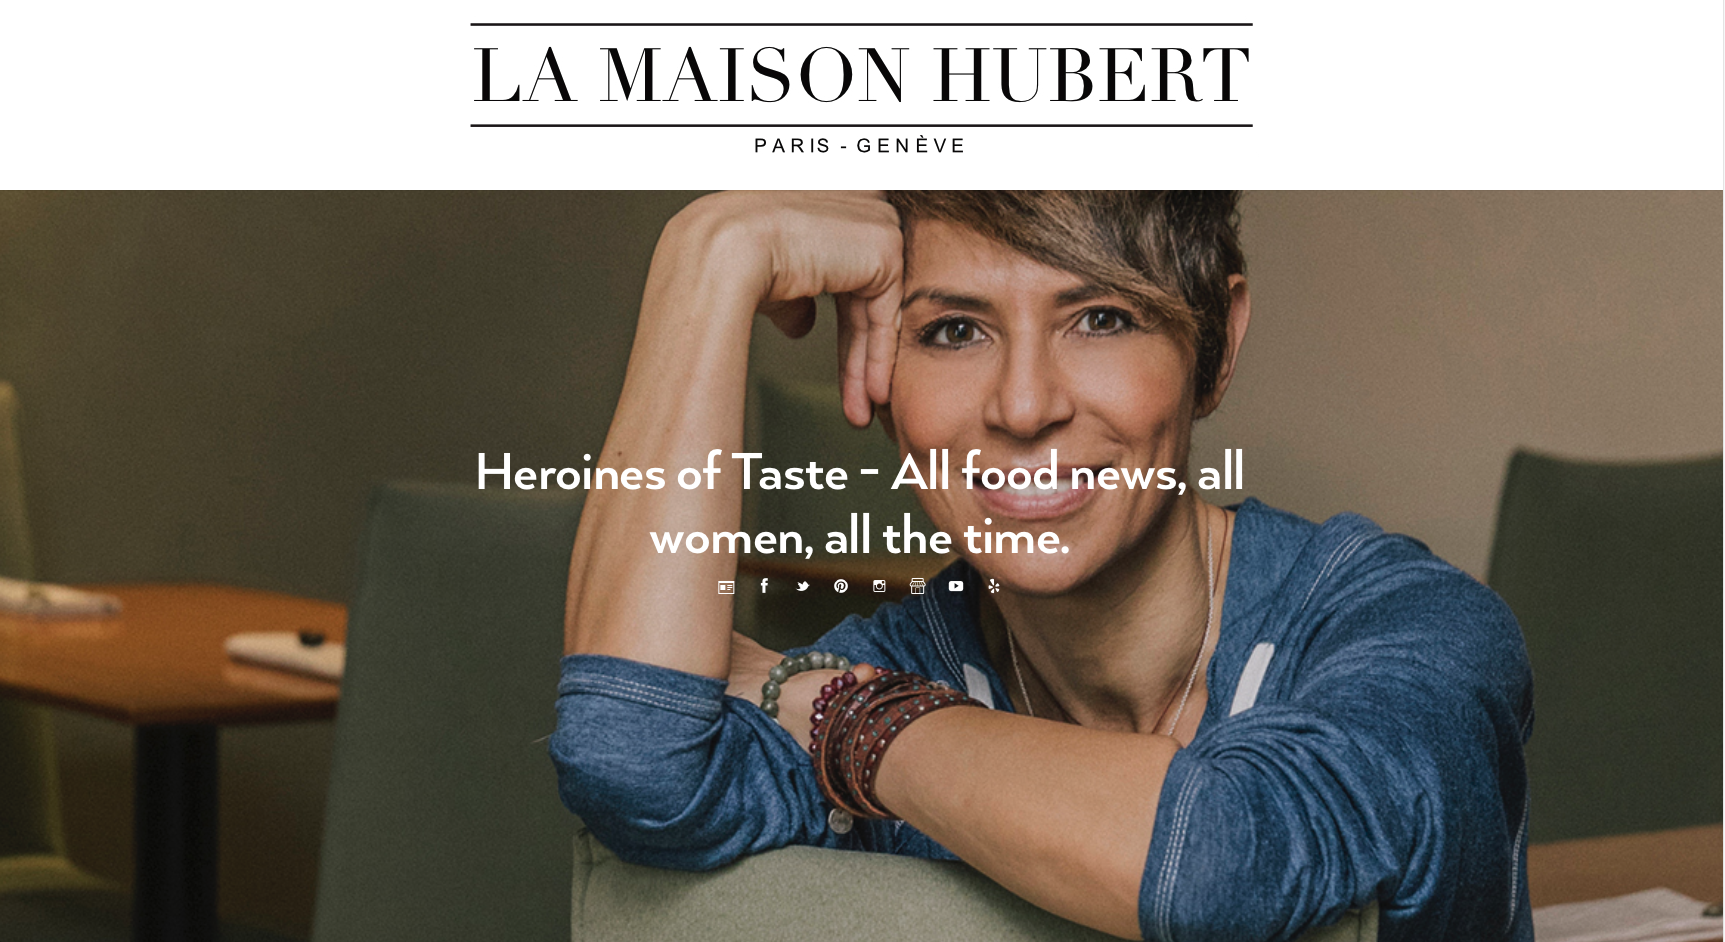 This curation blog developed with Tumblr for La Maison Hubert is a live showcase of all the food news and social media content celebrating women changing the face of gastronomy around the globe.